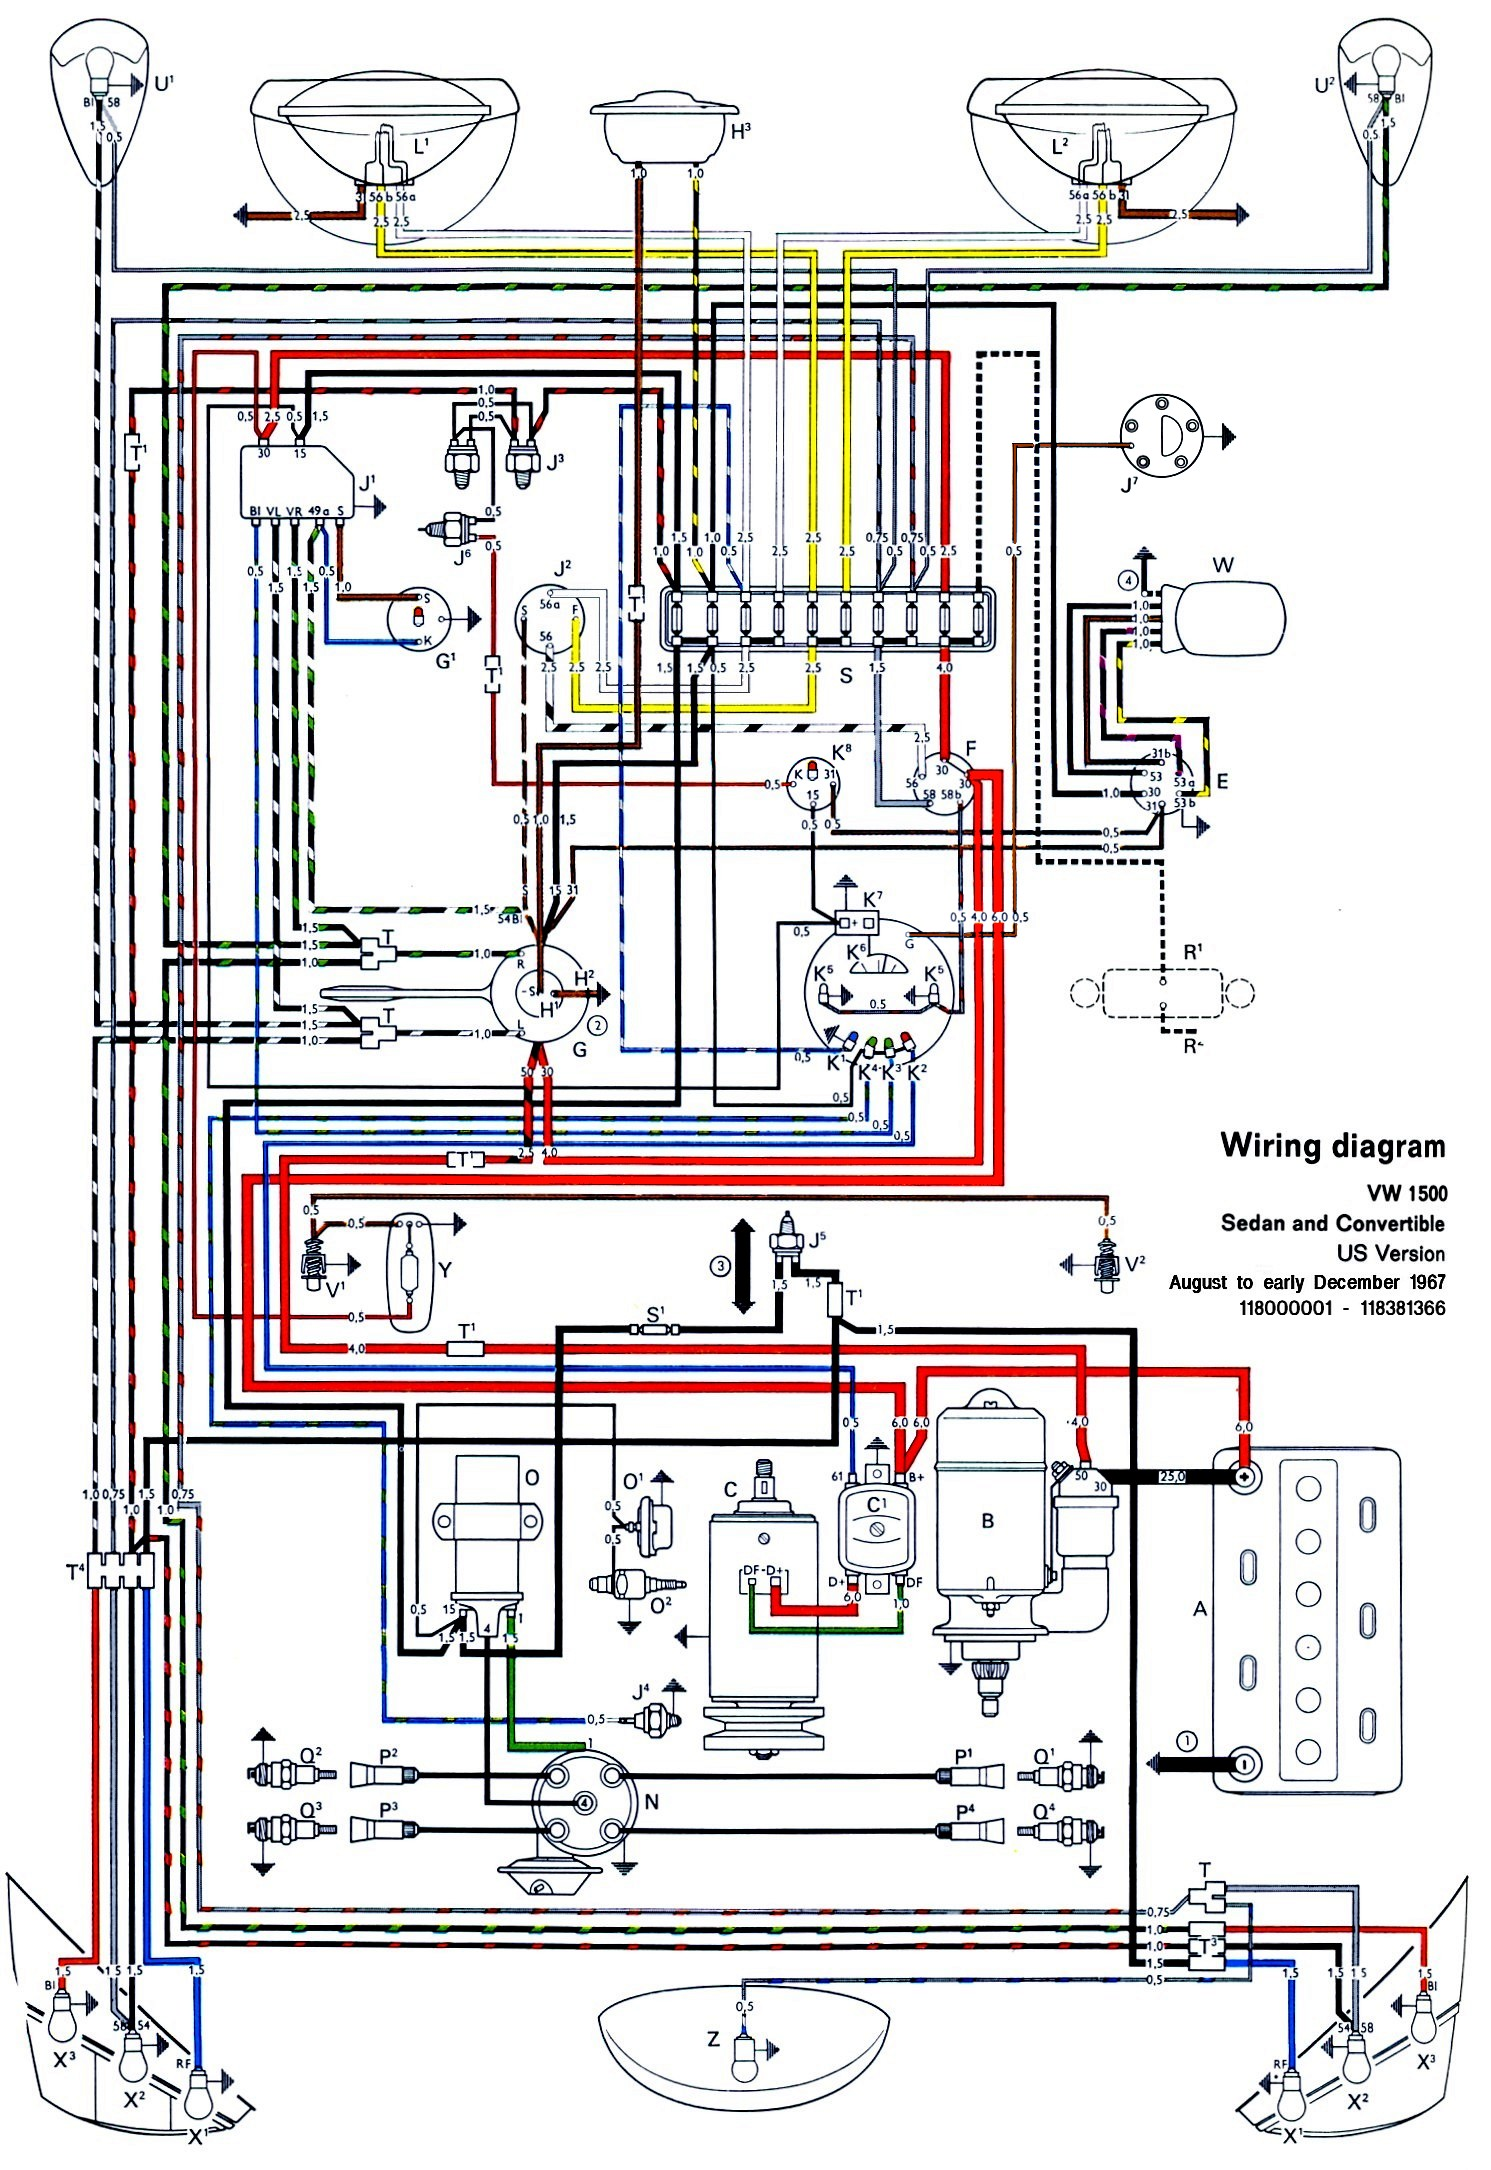 bug_68_early_usa?resize=665%2C968&ssl=1 diagrams 19191168 vw golf wiring diagram electrical wiring vw golf 3 electrical wiring diagram at mifinder.co